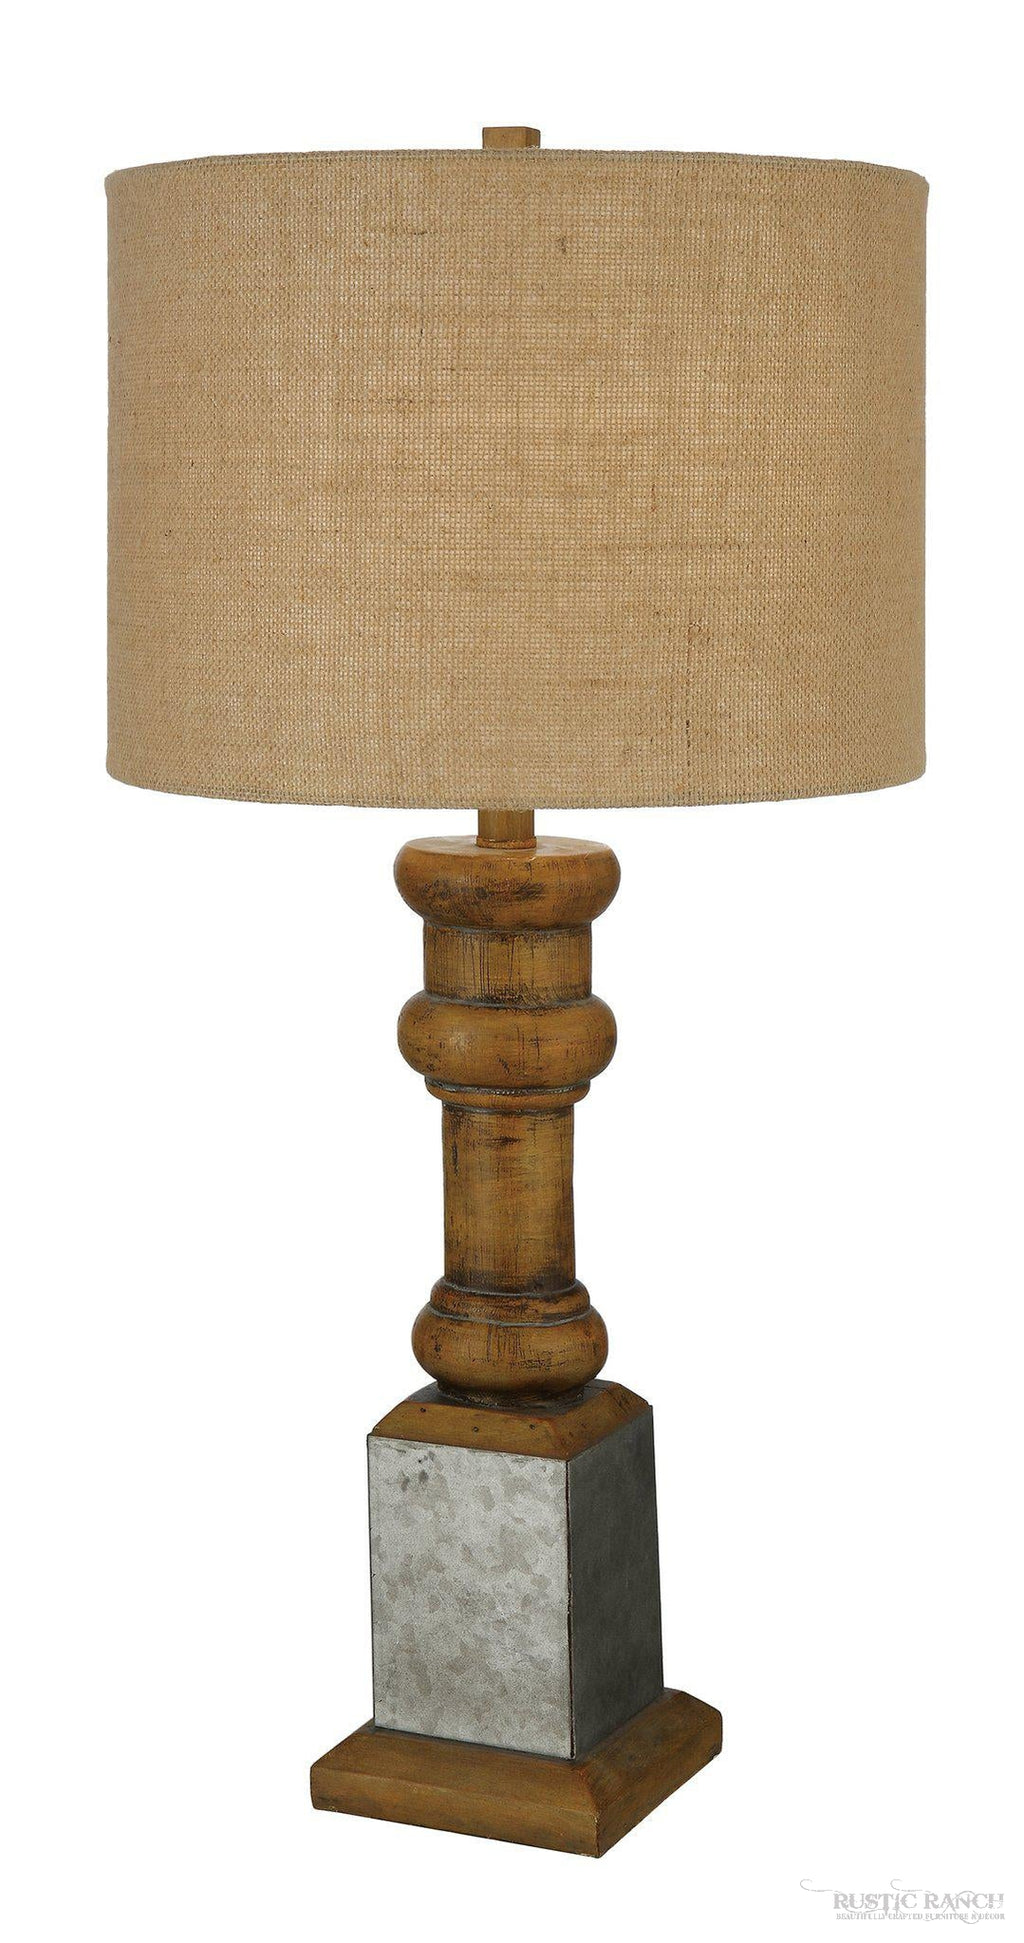 HEIRLOOM TABLE LAMP-Rustic Ranch